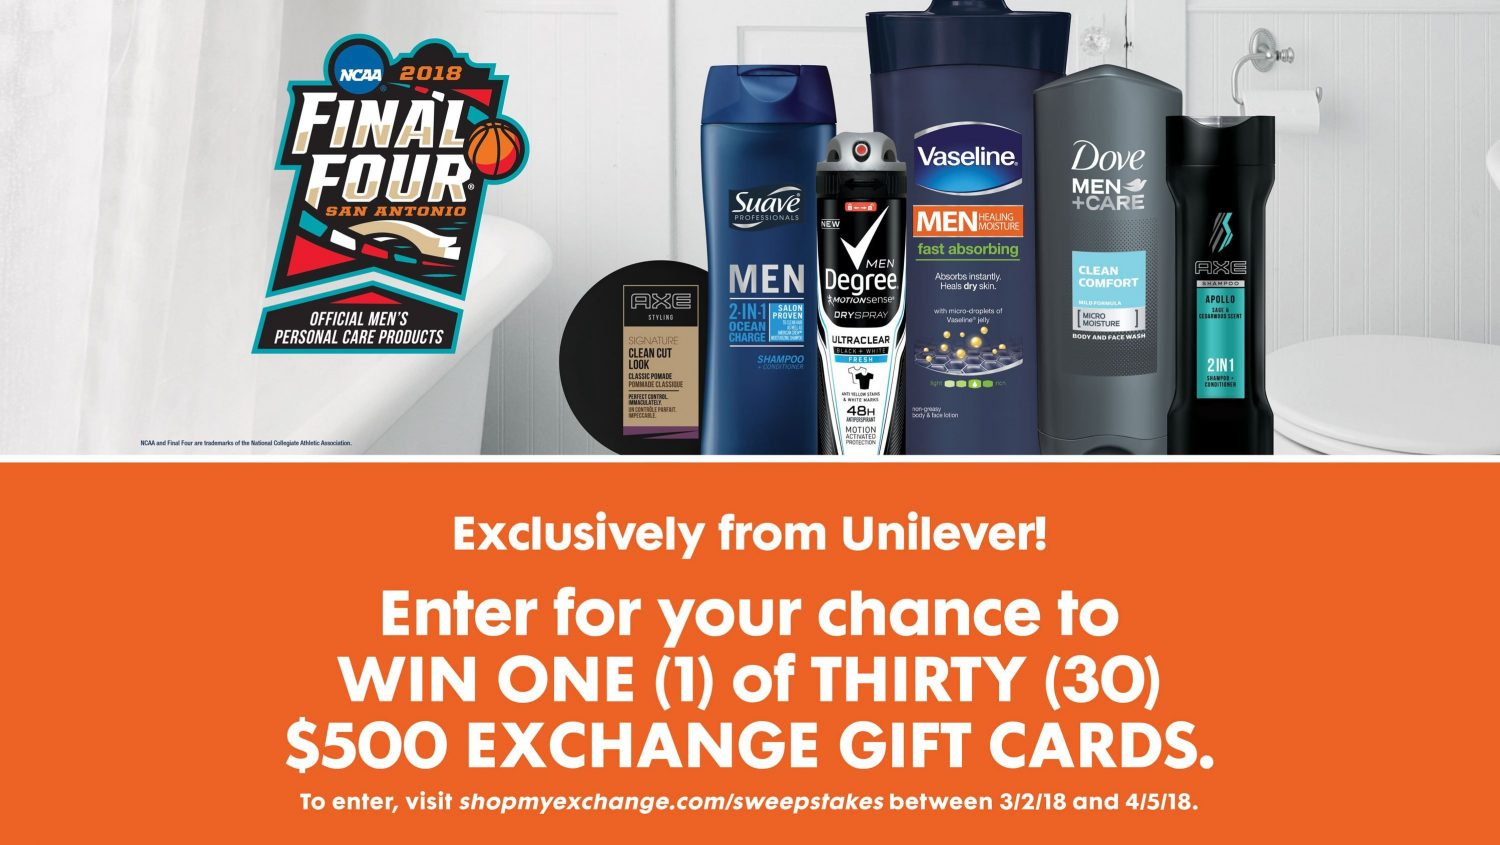 March Madness: Military Shoppers Can Win a $500 Exchange Gift Card in Unilever Sweepstakes